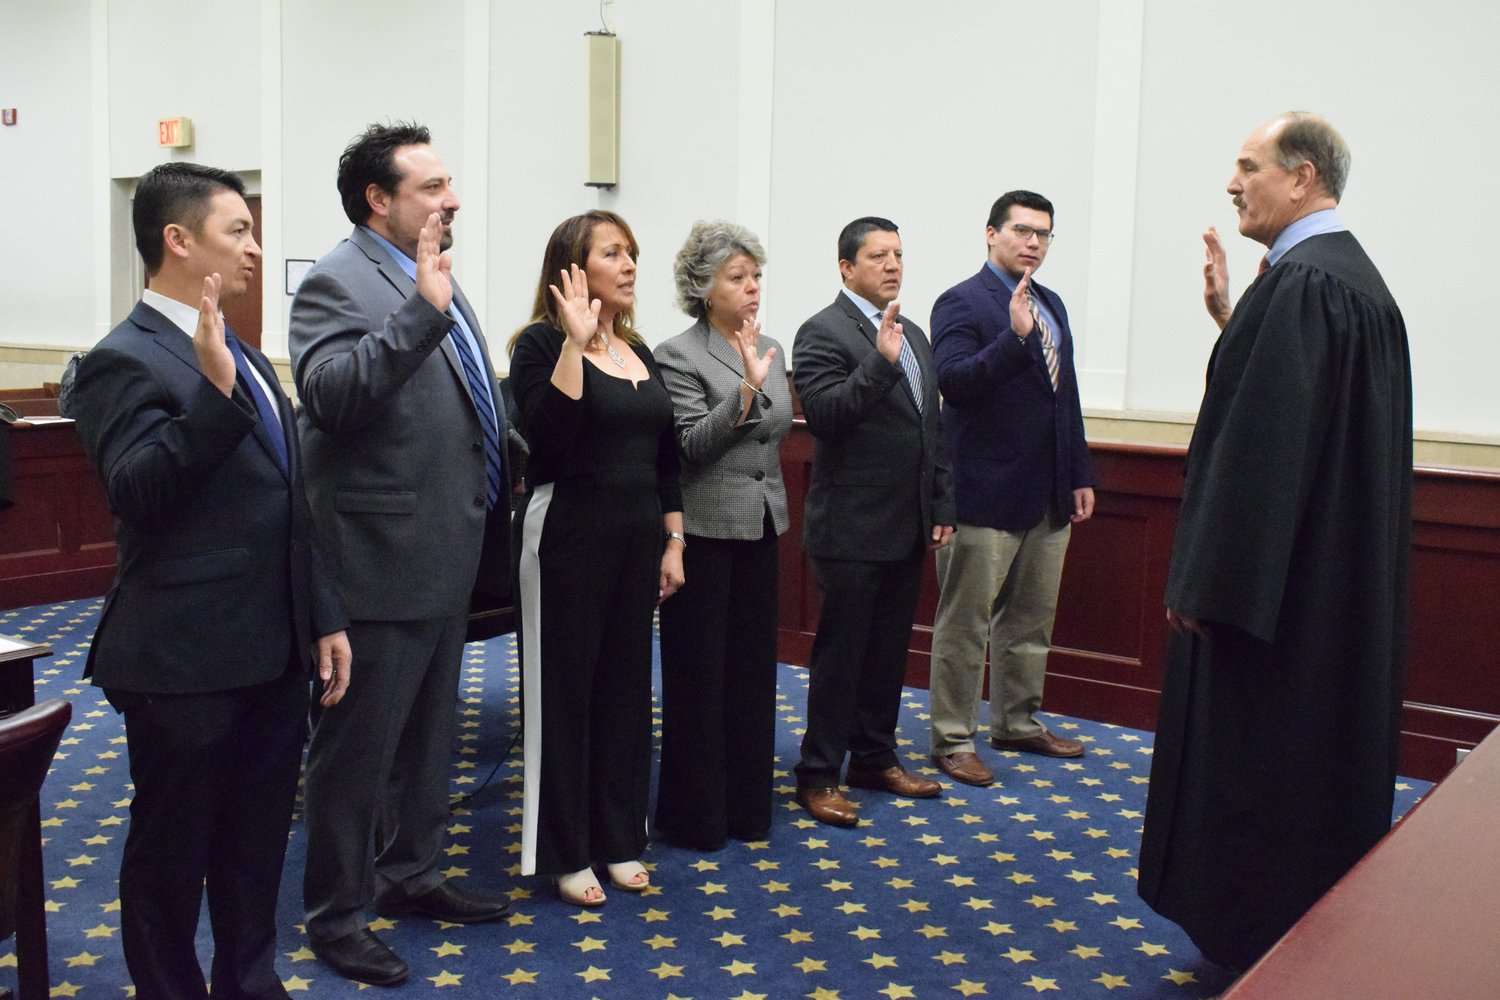 Glen Cove City Court Judge Richard McCord swore in members of the board of directors of the North Shore Hispanic Chamber of Commerce of New York, from left, Ever Padilla, Steve Pavlidis, Soraida Corella, Lucy Notaro, Bolivar Corella and Marlon Maldonado.